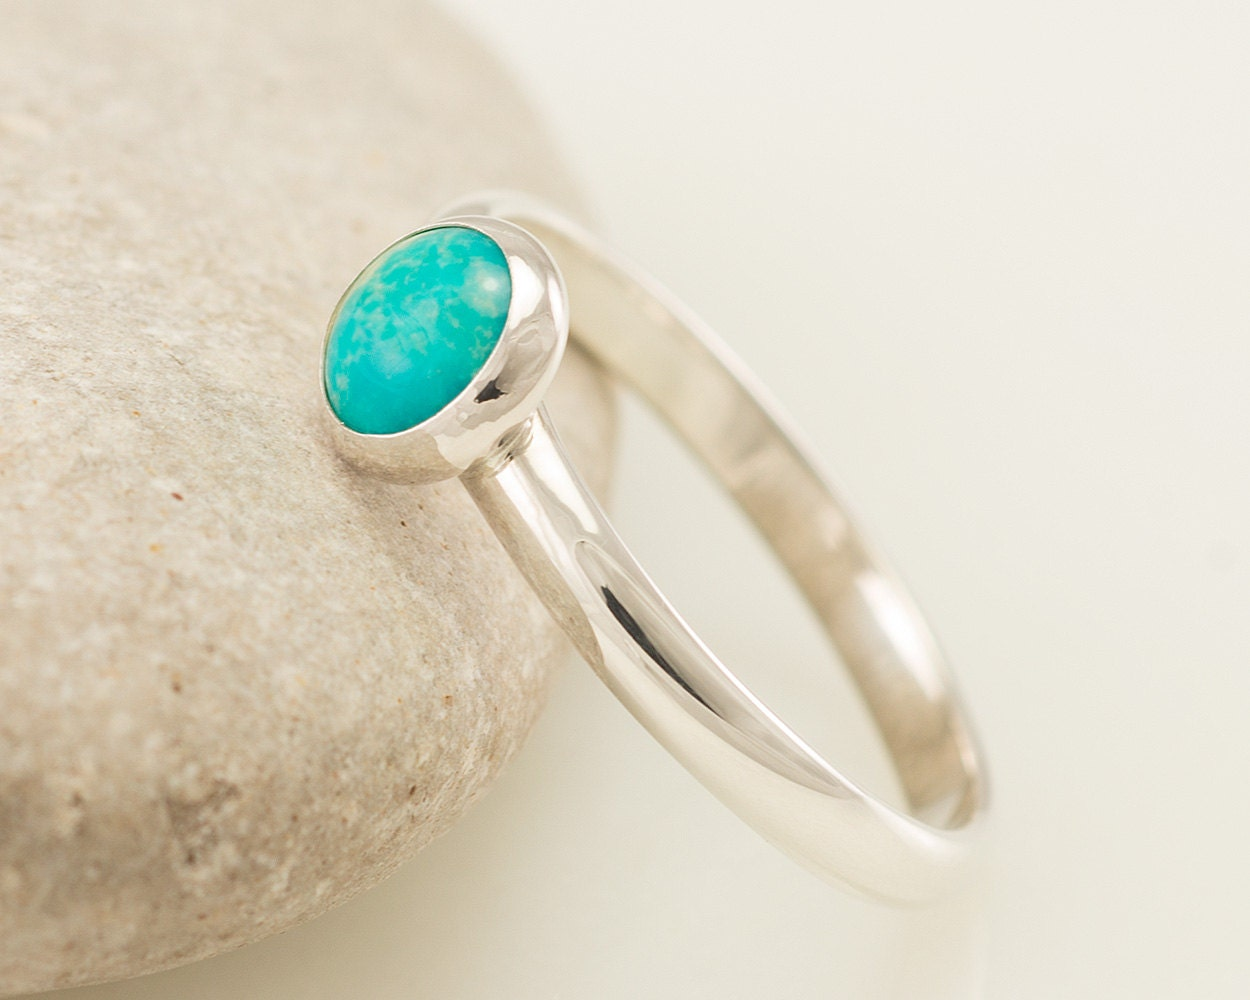 geometric alloy ring large stone product rings blue zinc eshkol plated tone turquoise hollow gold women for vintage